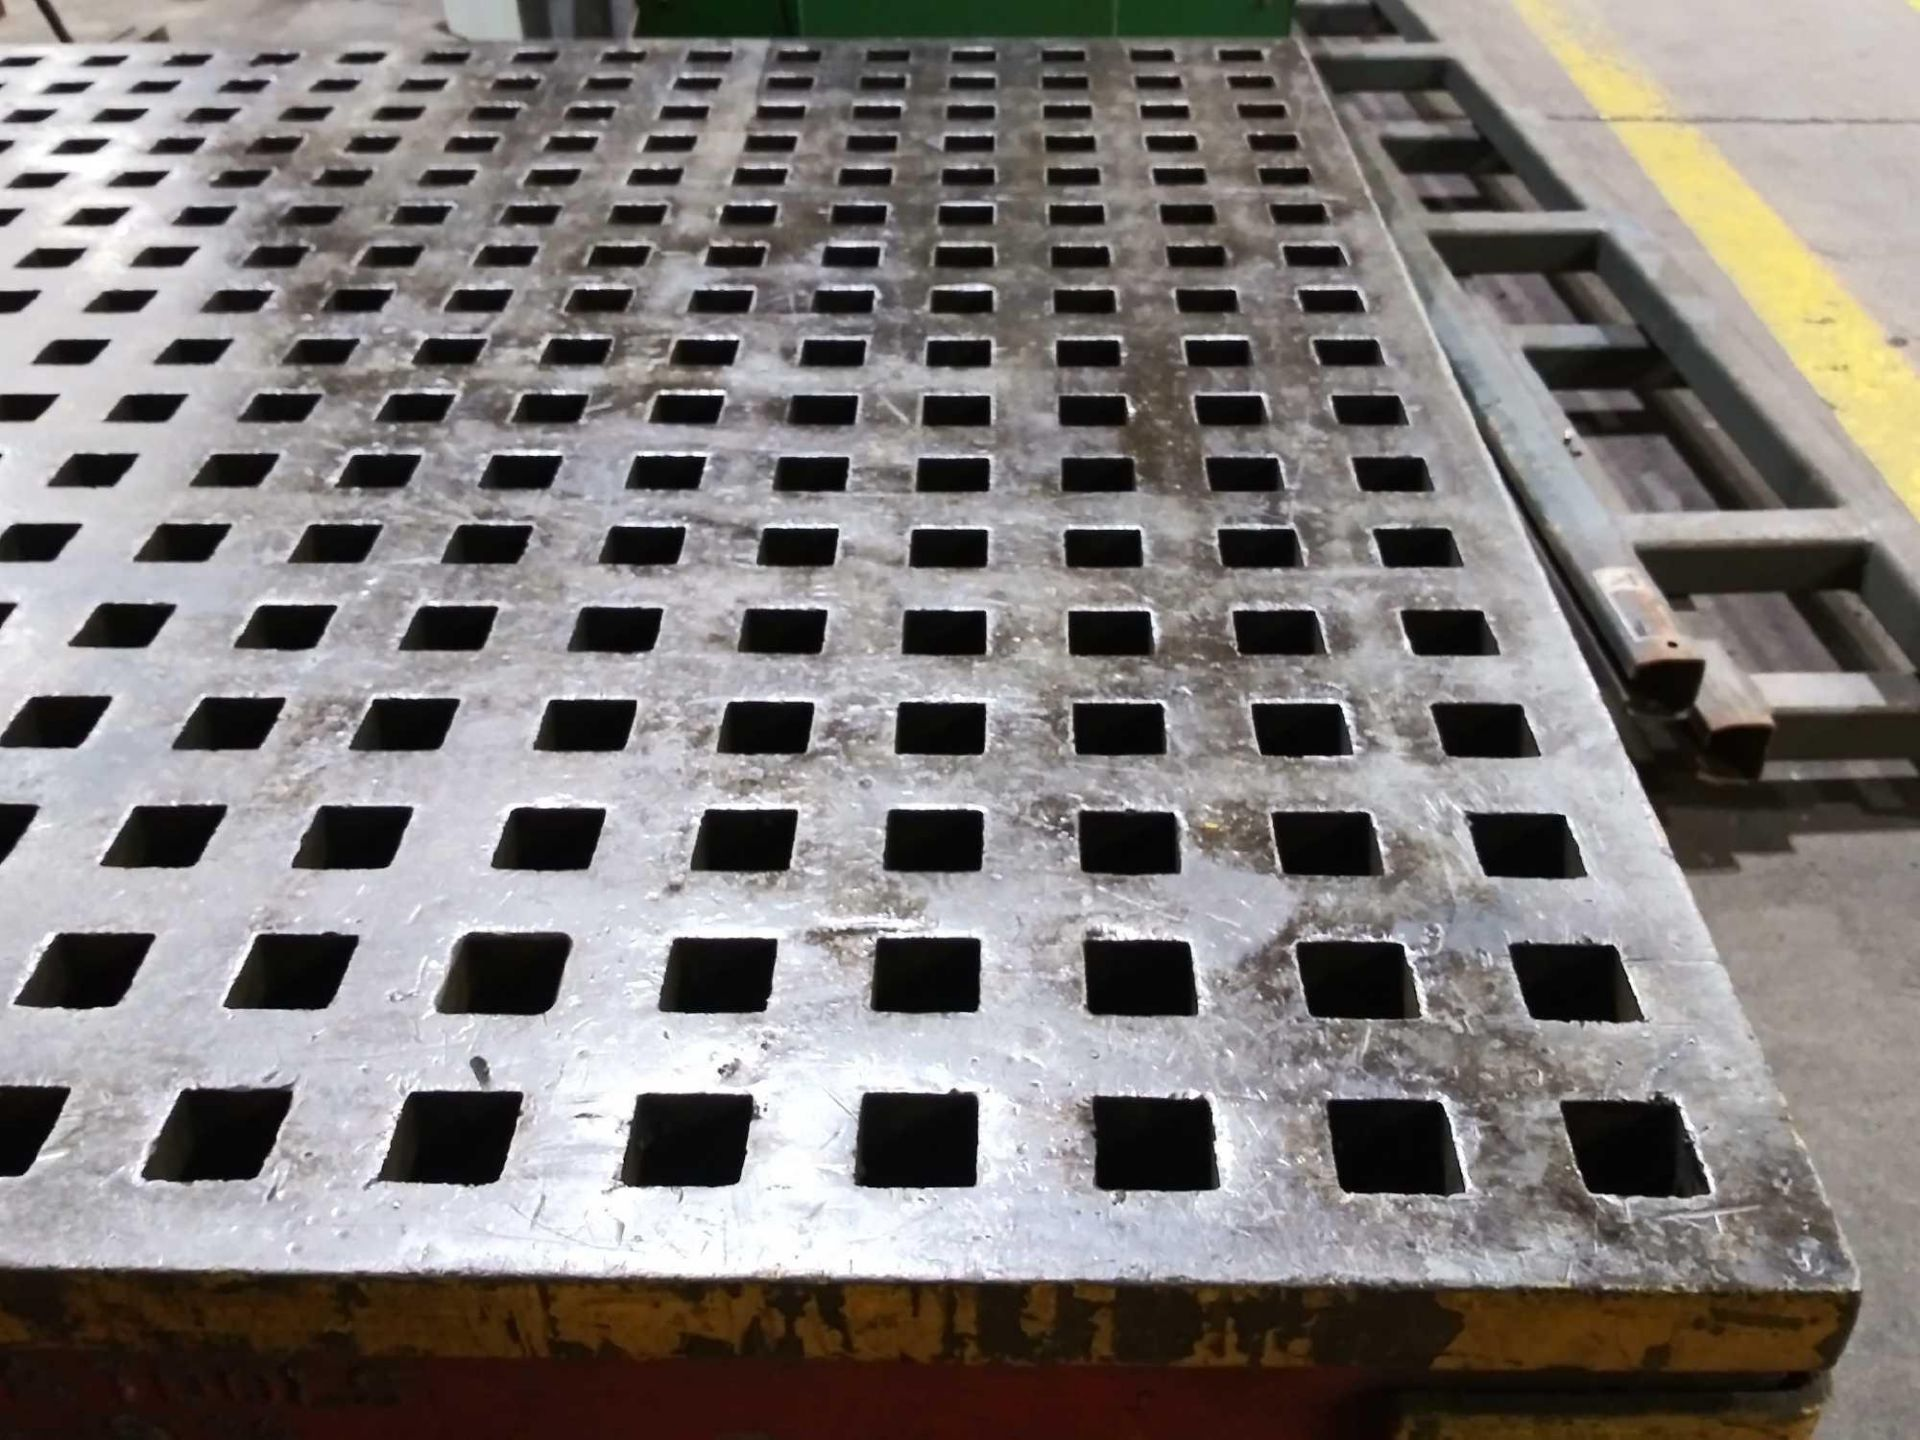 """Acorn Platens & Tools Welding Table, 60""""x60""""x30"""", square hole dimensions 1-3/4"""", inv1080 - Image 9 of 15"""